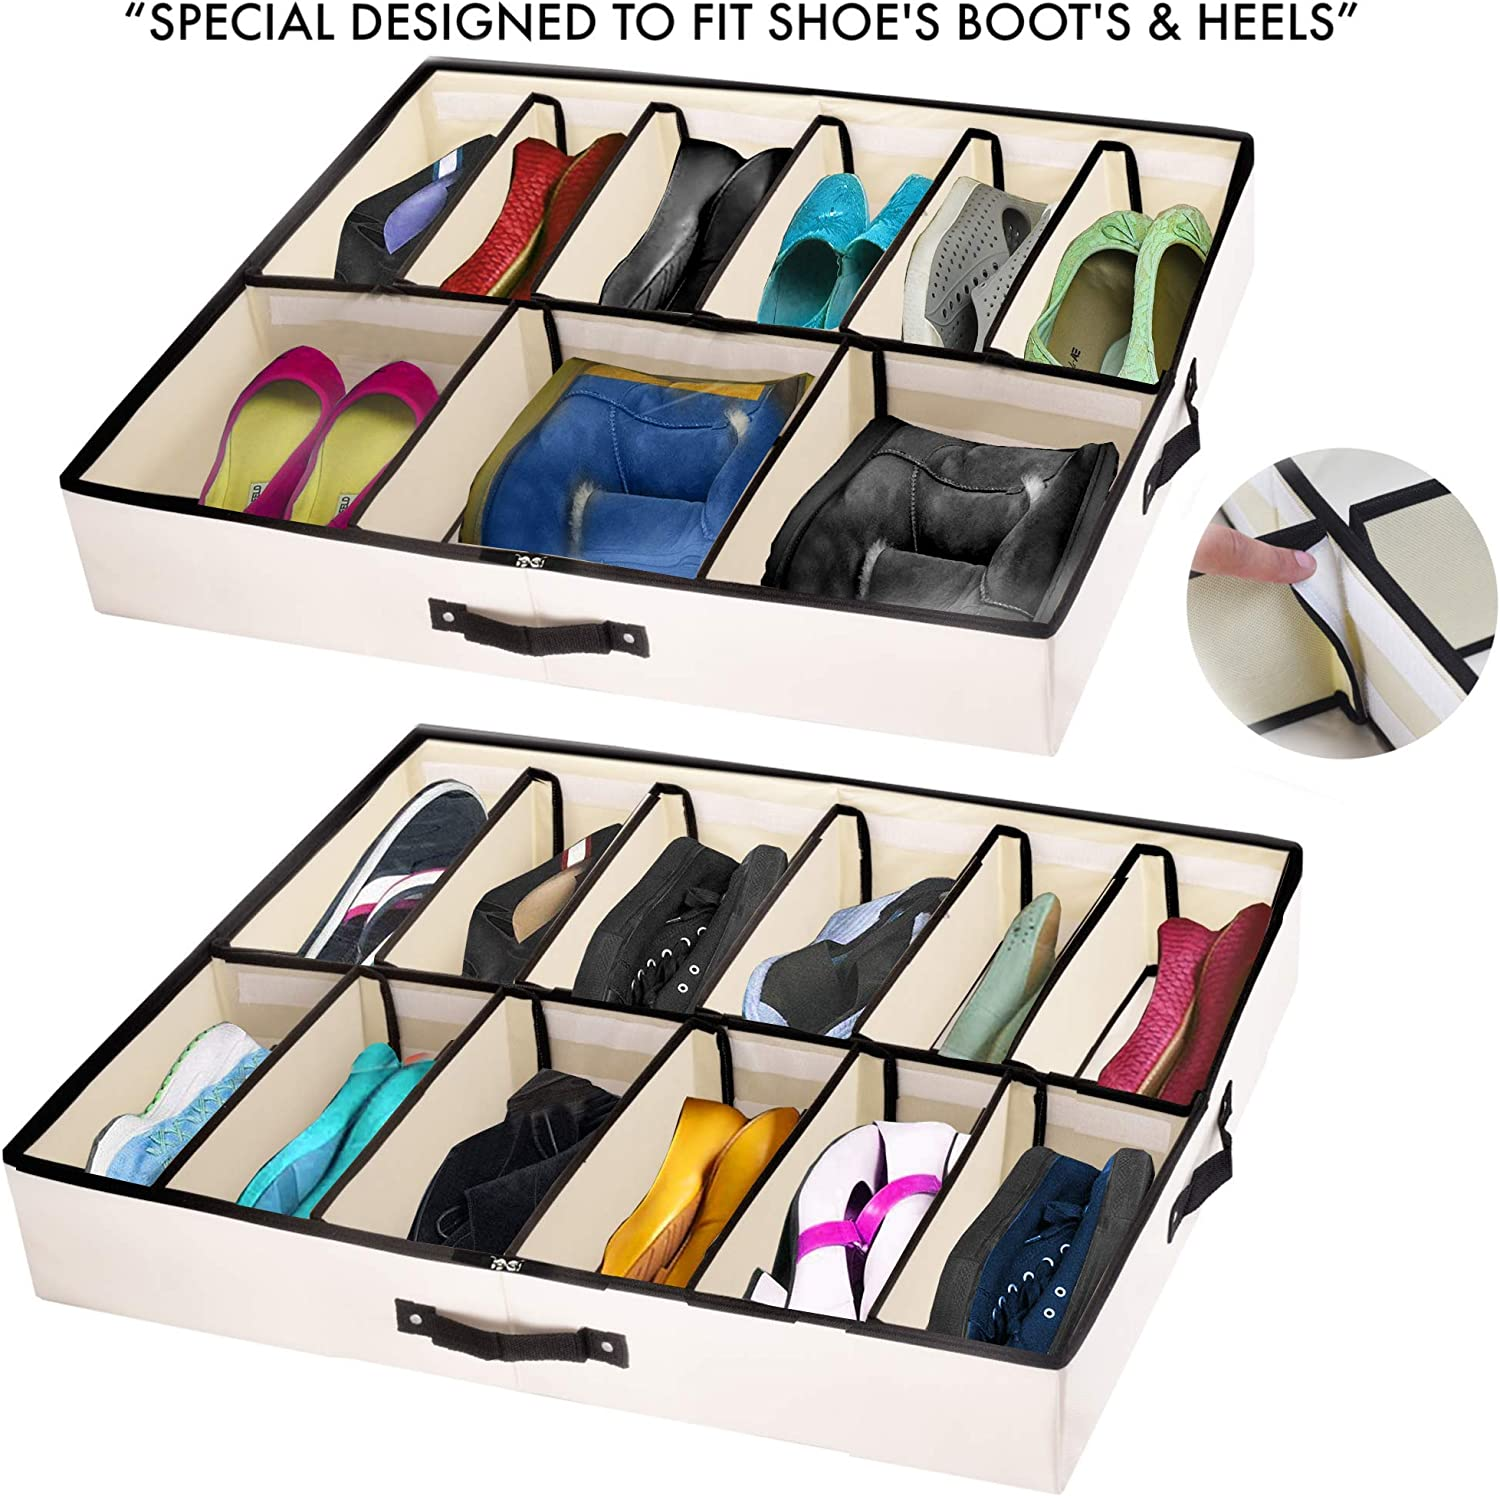 """Woffit """"The Ultimate Under Bed Storage Organizer"""" with Adjustable Dividers That fit Every Size Shoe, Boots, Heels & Accessories - Set of 2 Underbed Organizers Fits 24 Pairs Kids, Men & Women Shoes"""